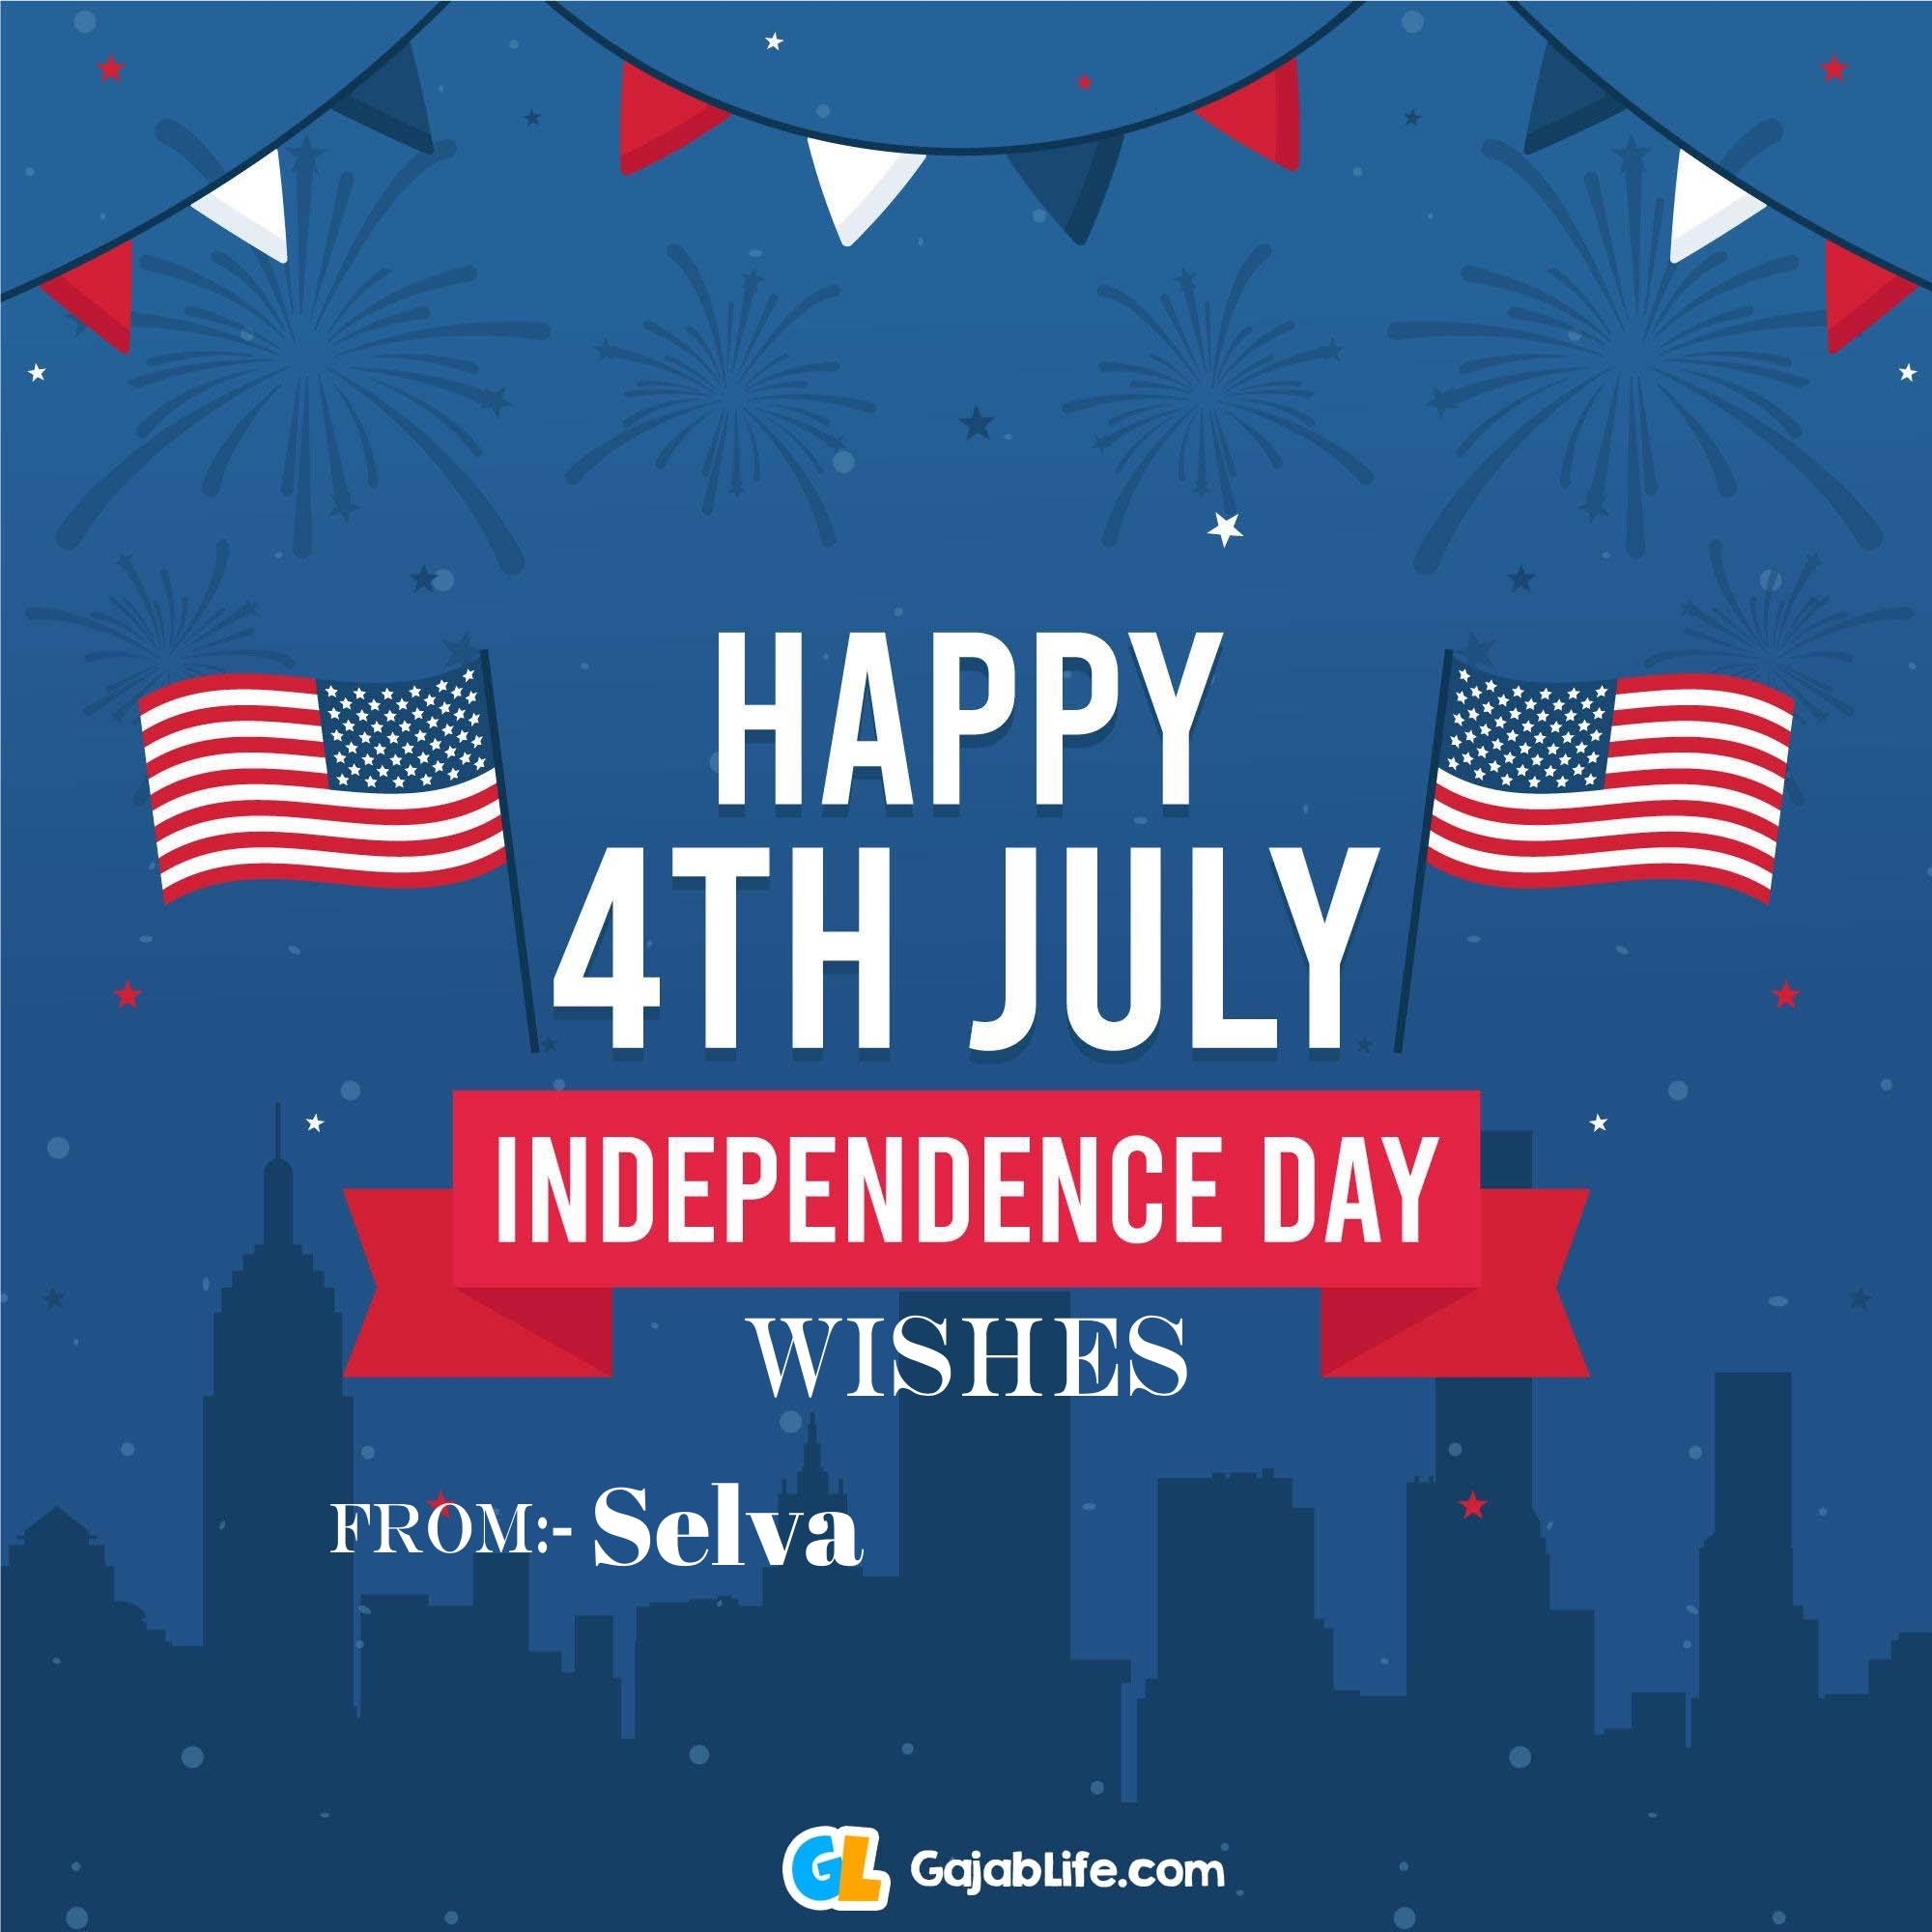 Selva happy independence day united states of america images